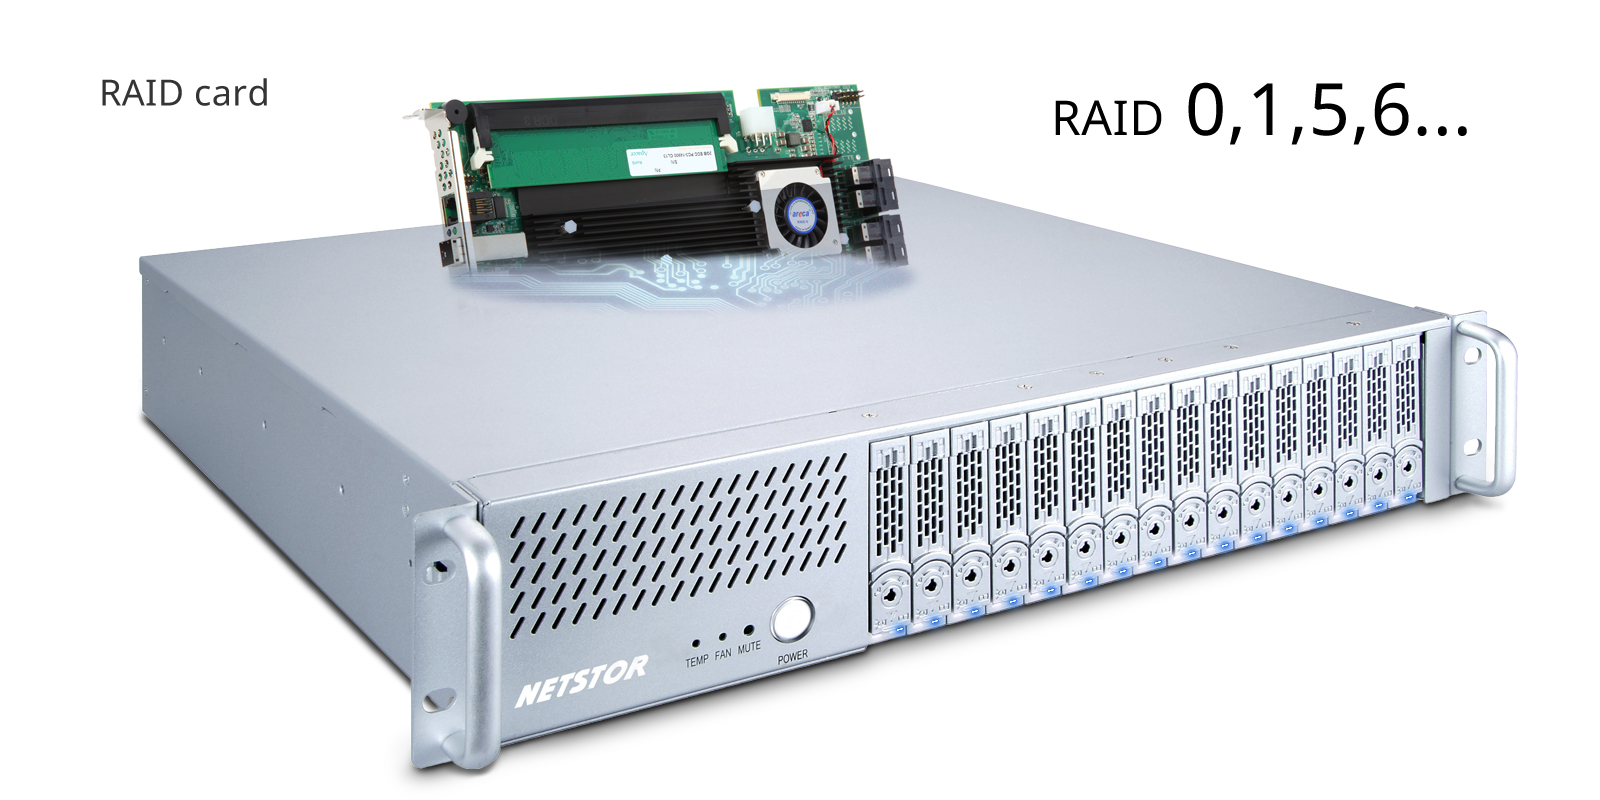 Netstor NA338TB3 support wide range RAID card.